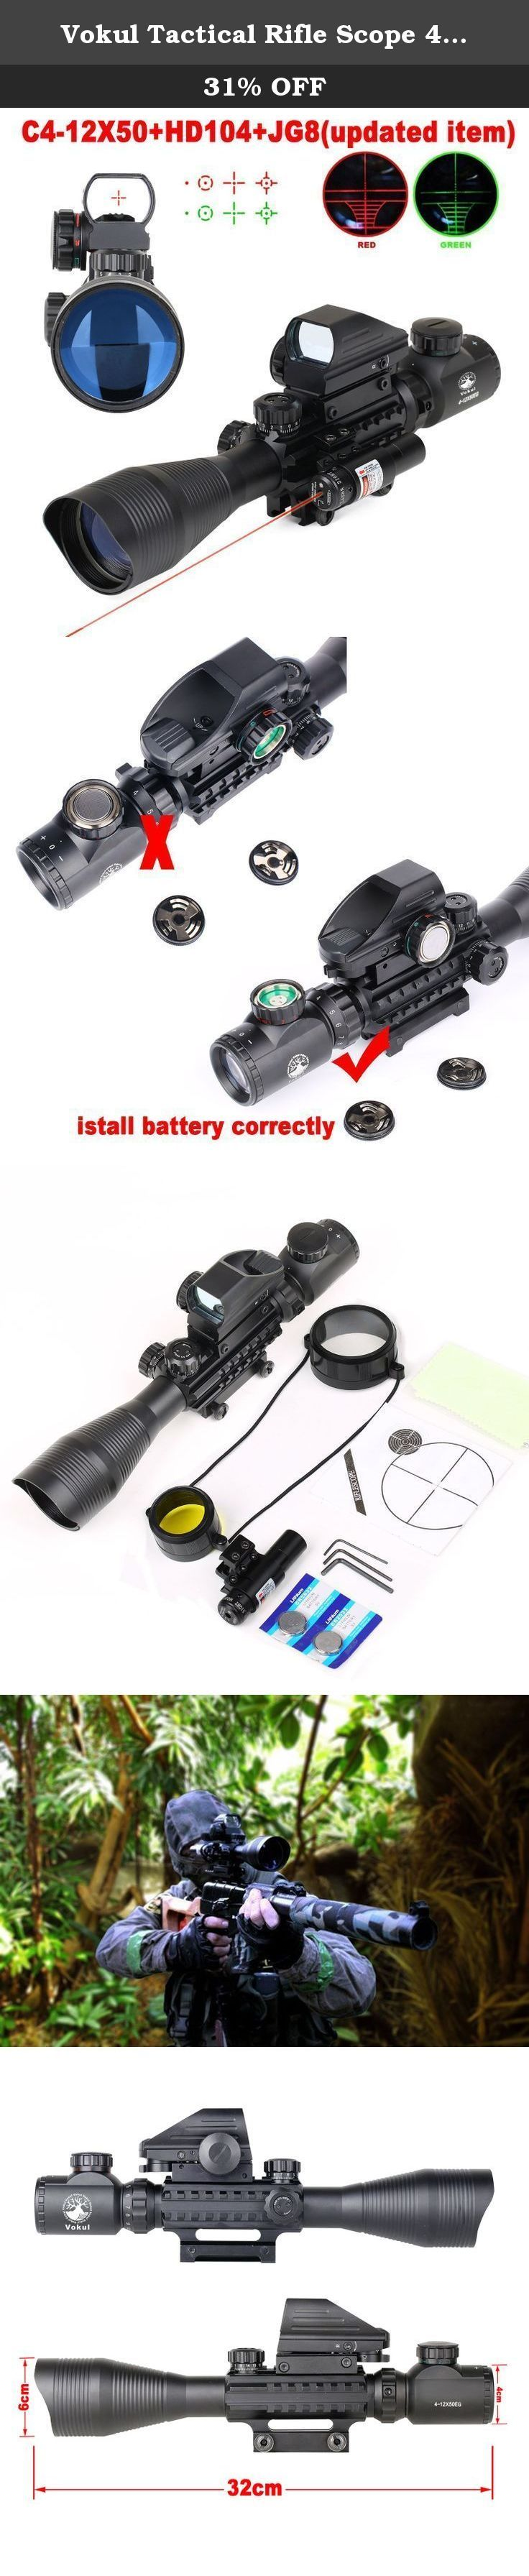 Vokul Tactical Rifle Scope 4-12x50EG Dual Illuminated Gun Scope and 4 Tactical Multi Optical Coated Holographic Red and Green Dot Sight for Hunting AR15 W/ 22mm Rail Mount. 4-12x50EG RIFLE SCOPE Magnification:4x-12x Objective lens diameter (mm/in): 50/1.9